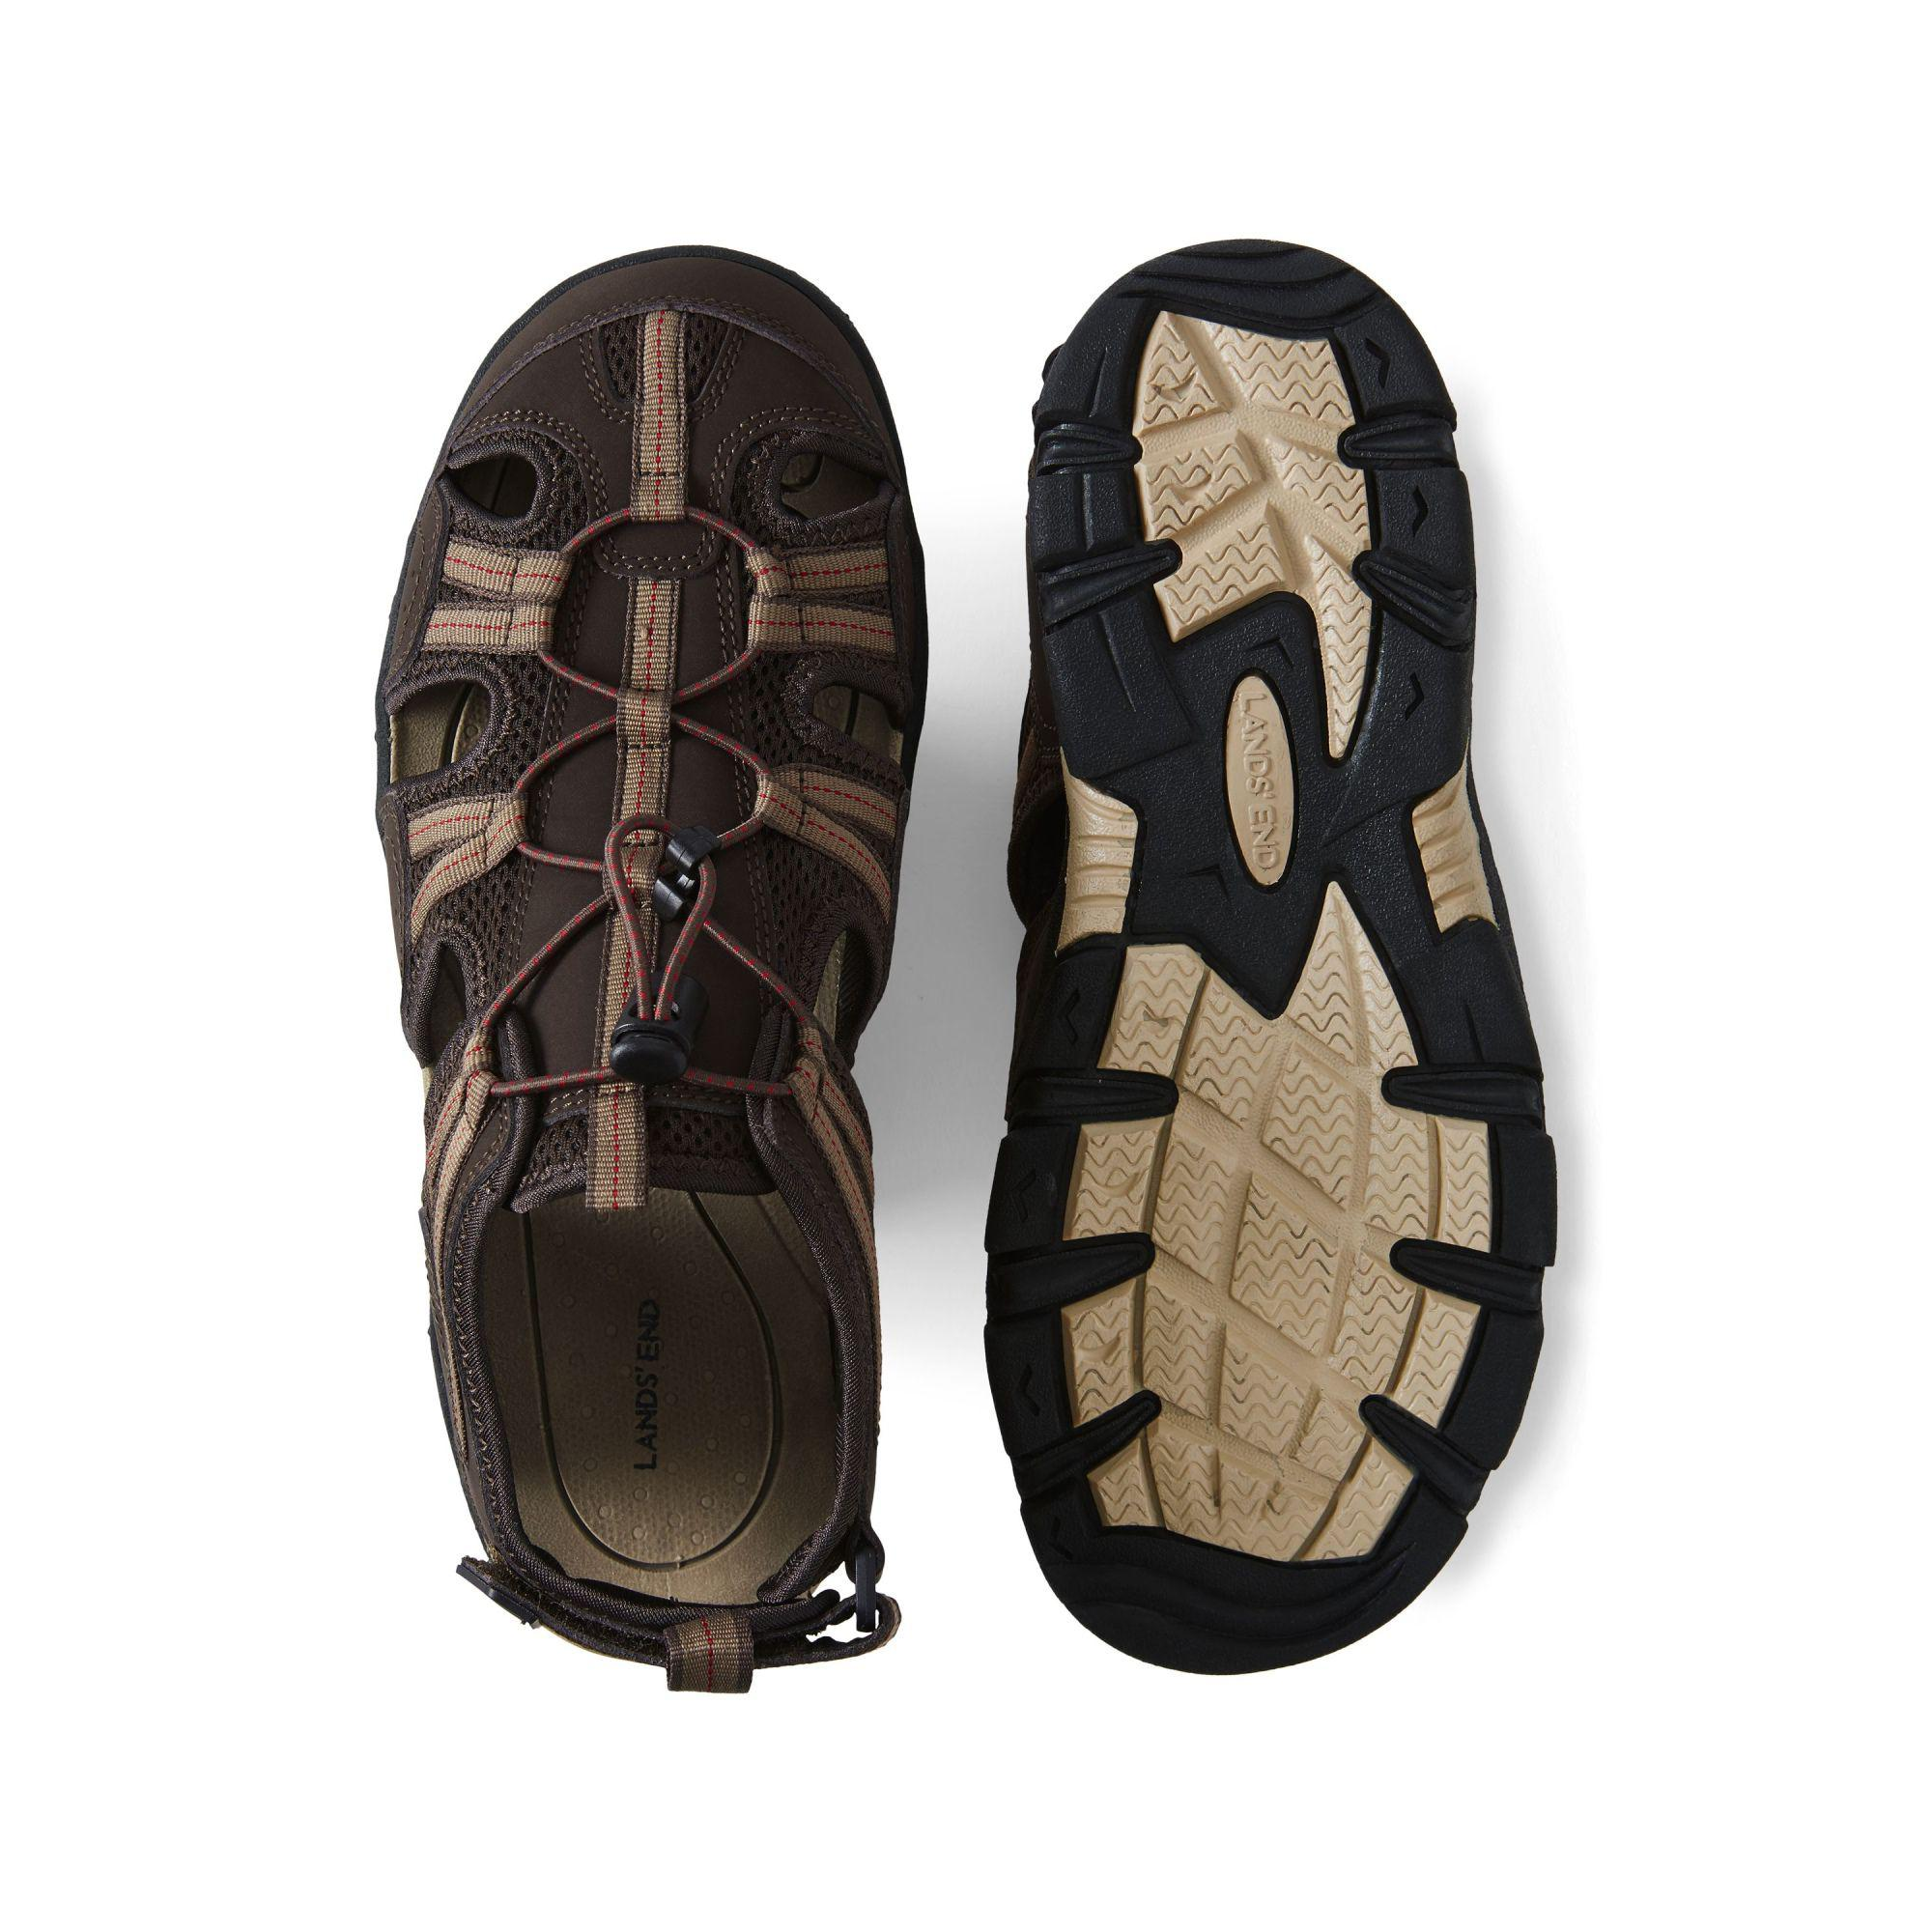 4ad3369280b4 Lands  End - Brown Wide Water Sandals for Men - Lyst. View fullscreen